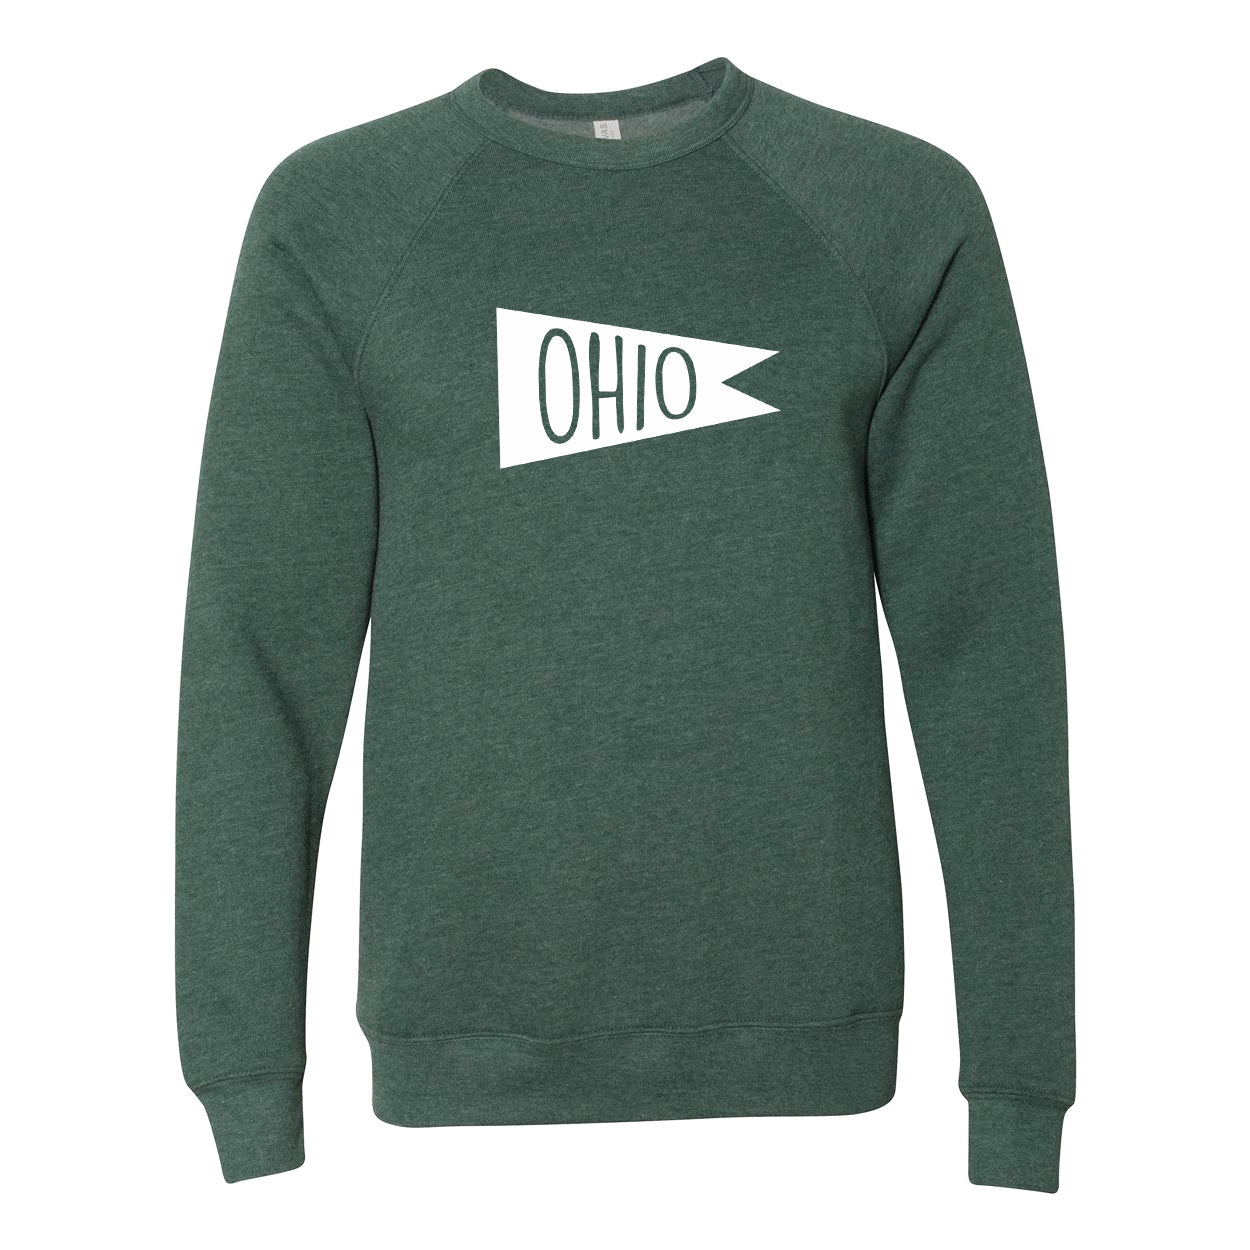 Retro Ohio white Flag Ultra Soft Sweatshirt - Clothe Ohio - Soft Ohio Shirts